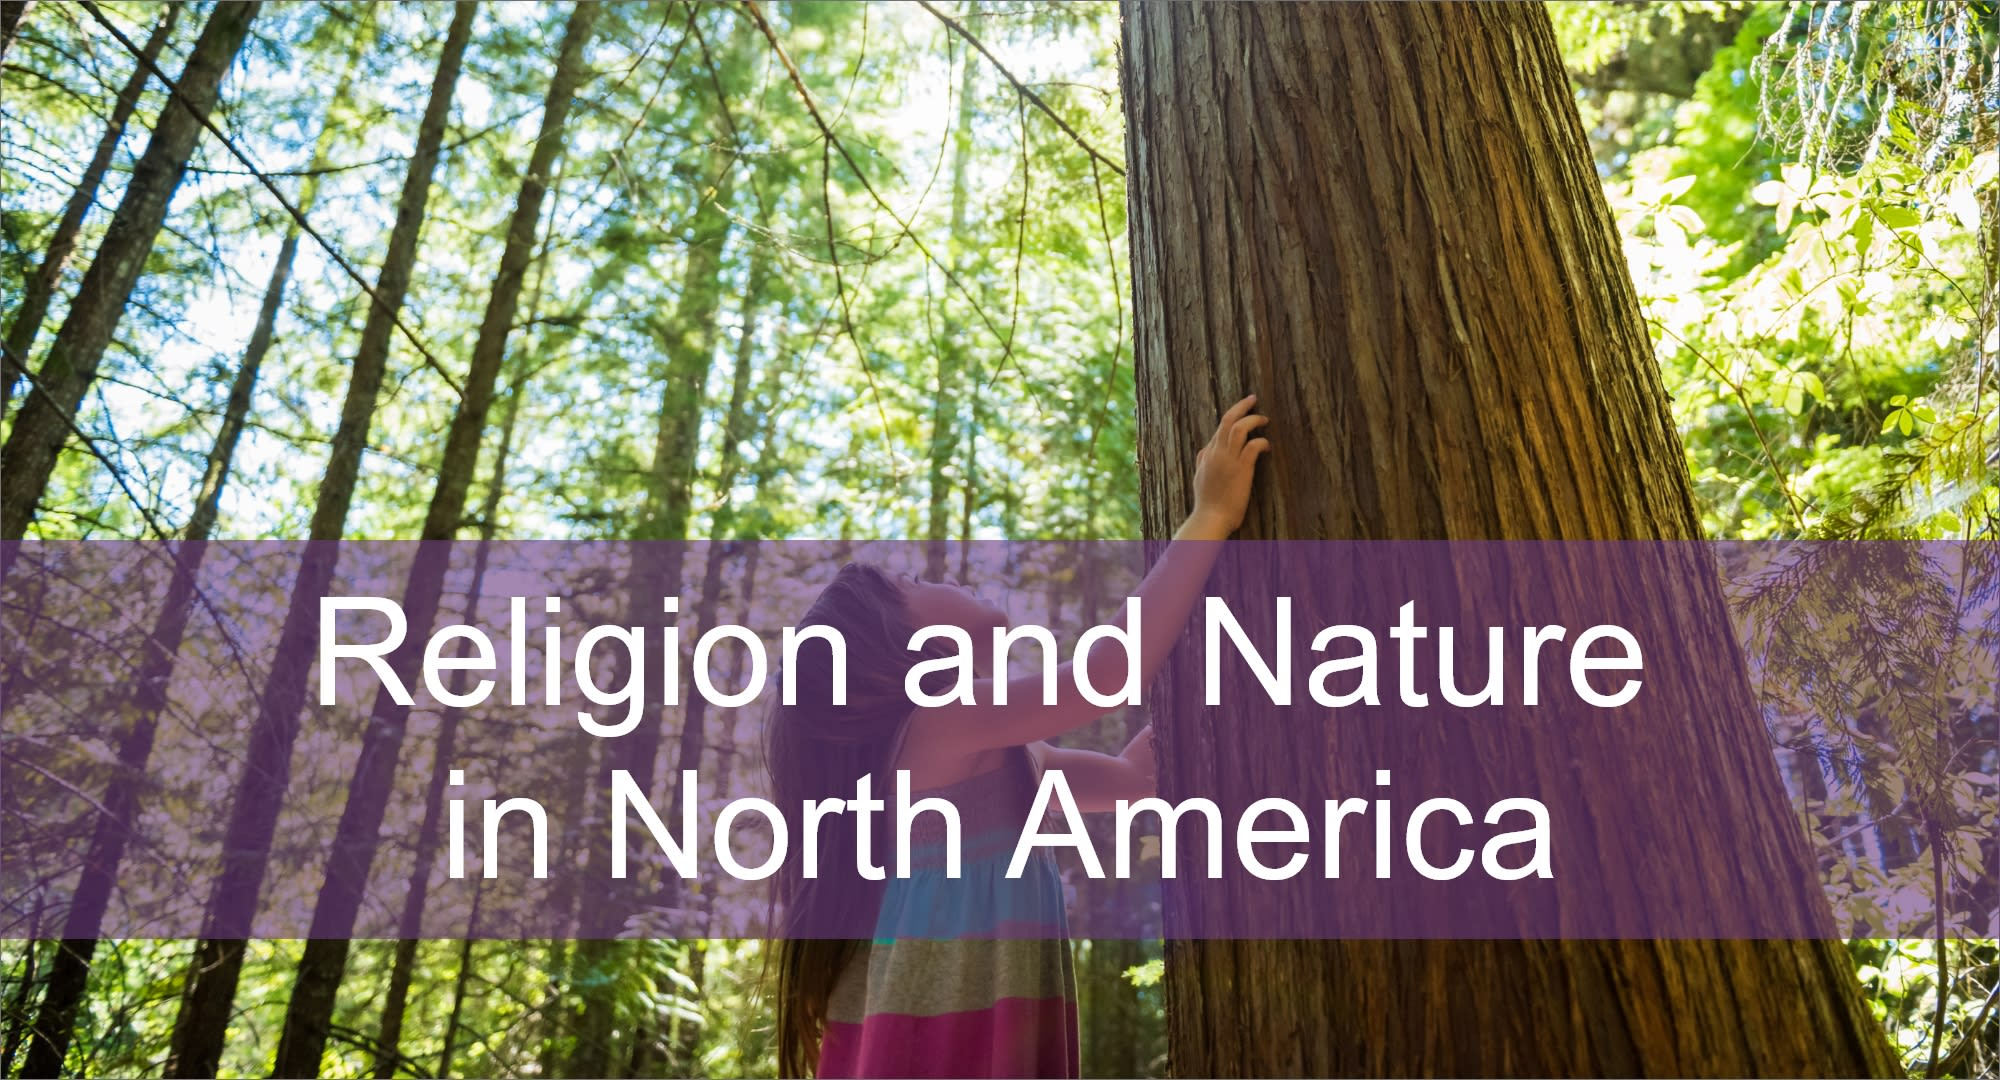 Click here to view content on Religion and Nature